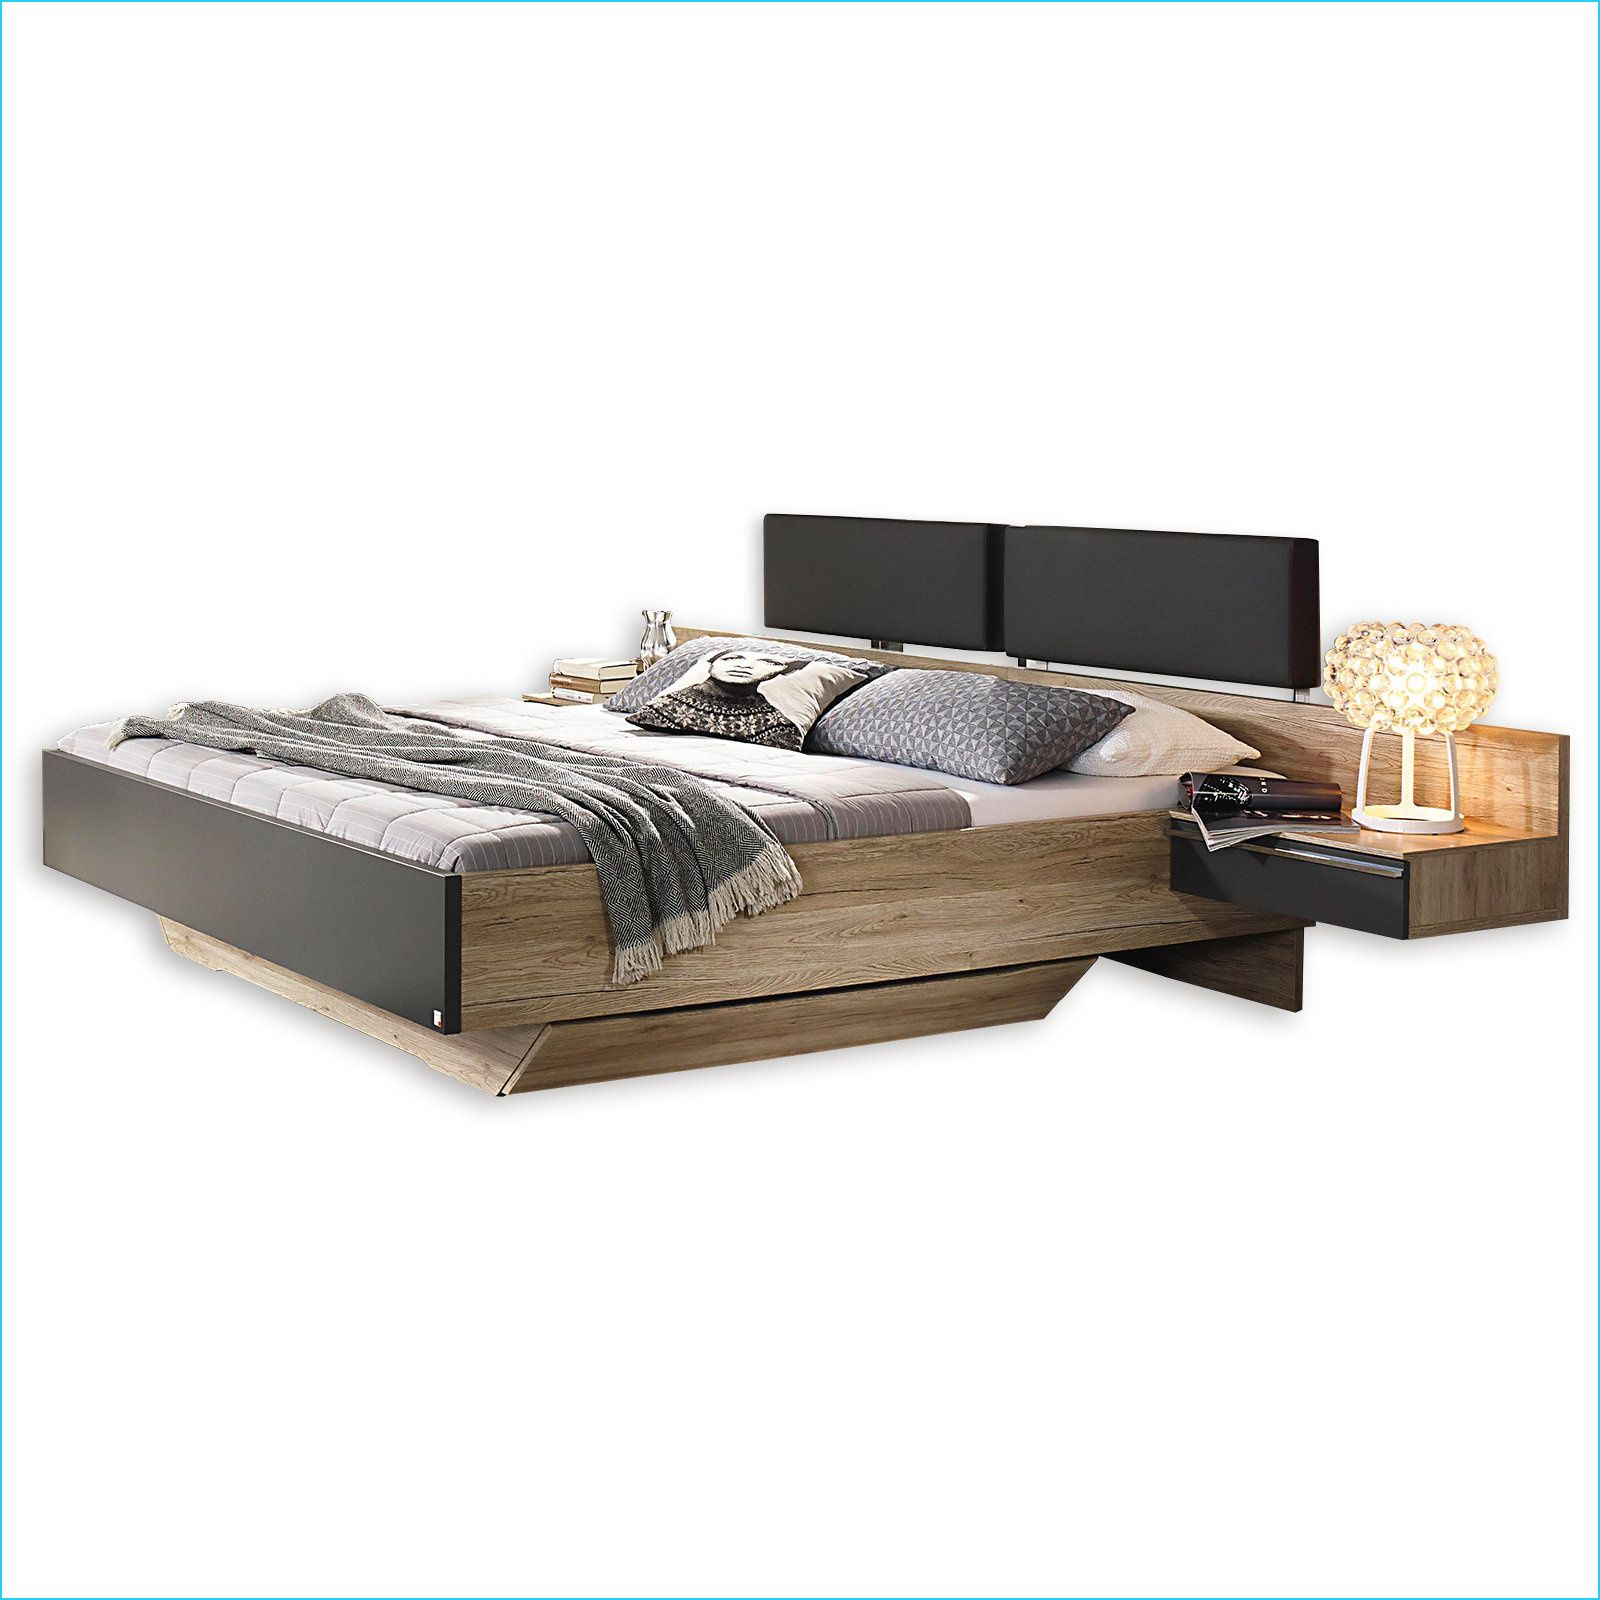 Bettroller0d In 2020 Home Decor Furniture Bed